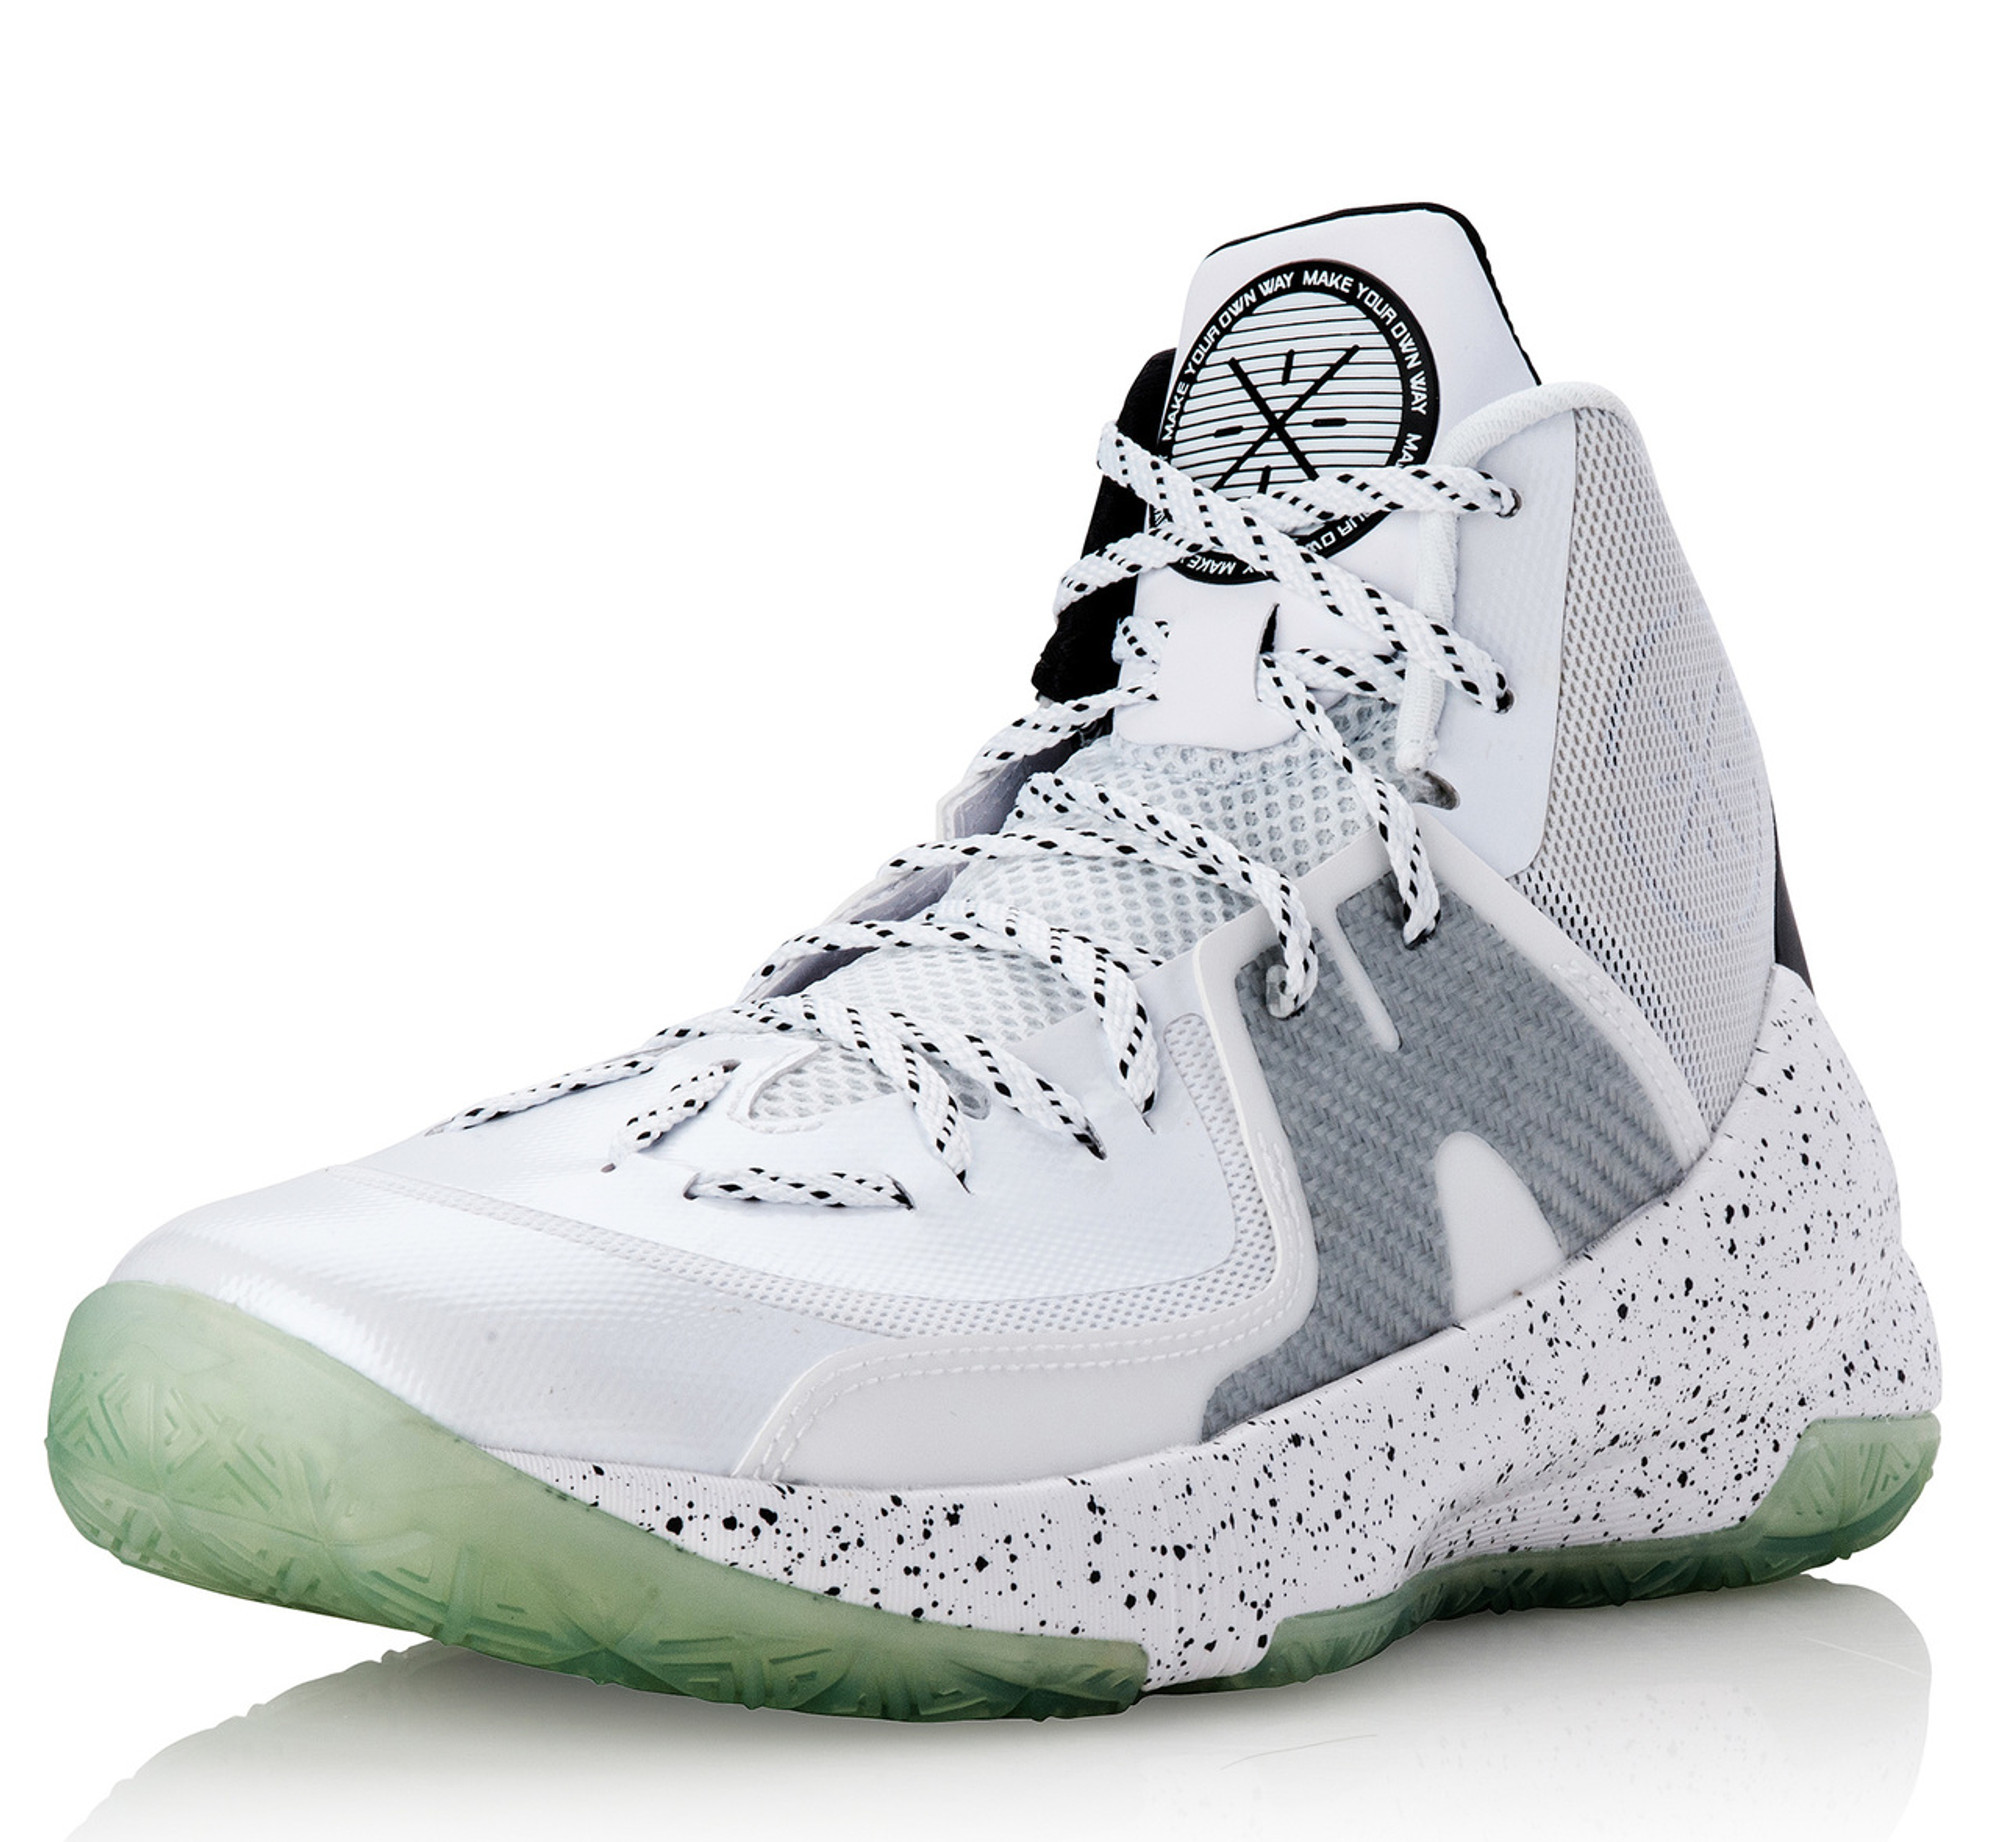 Wade Fission 3.5 White | Shop online